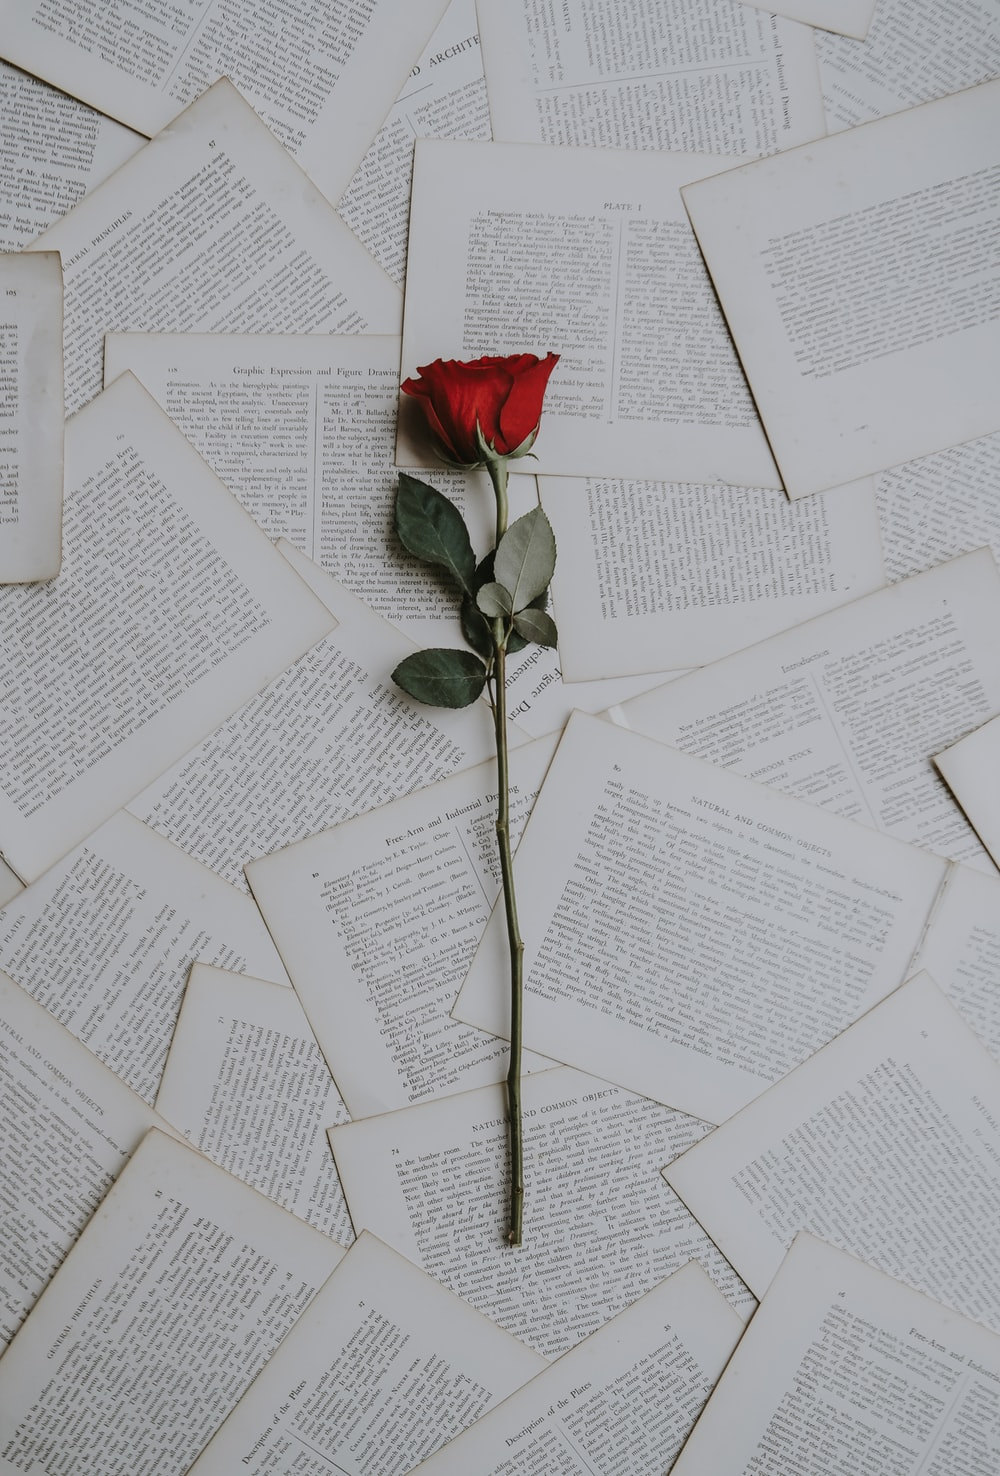 red rose on book sheets